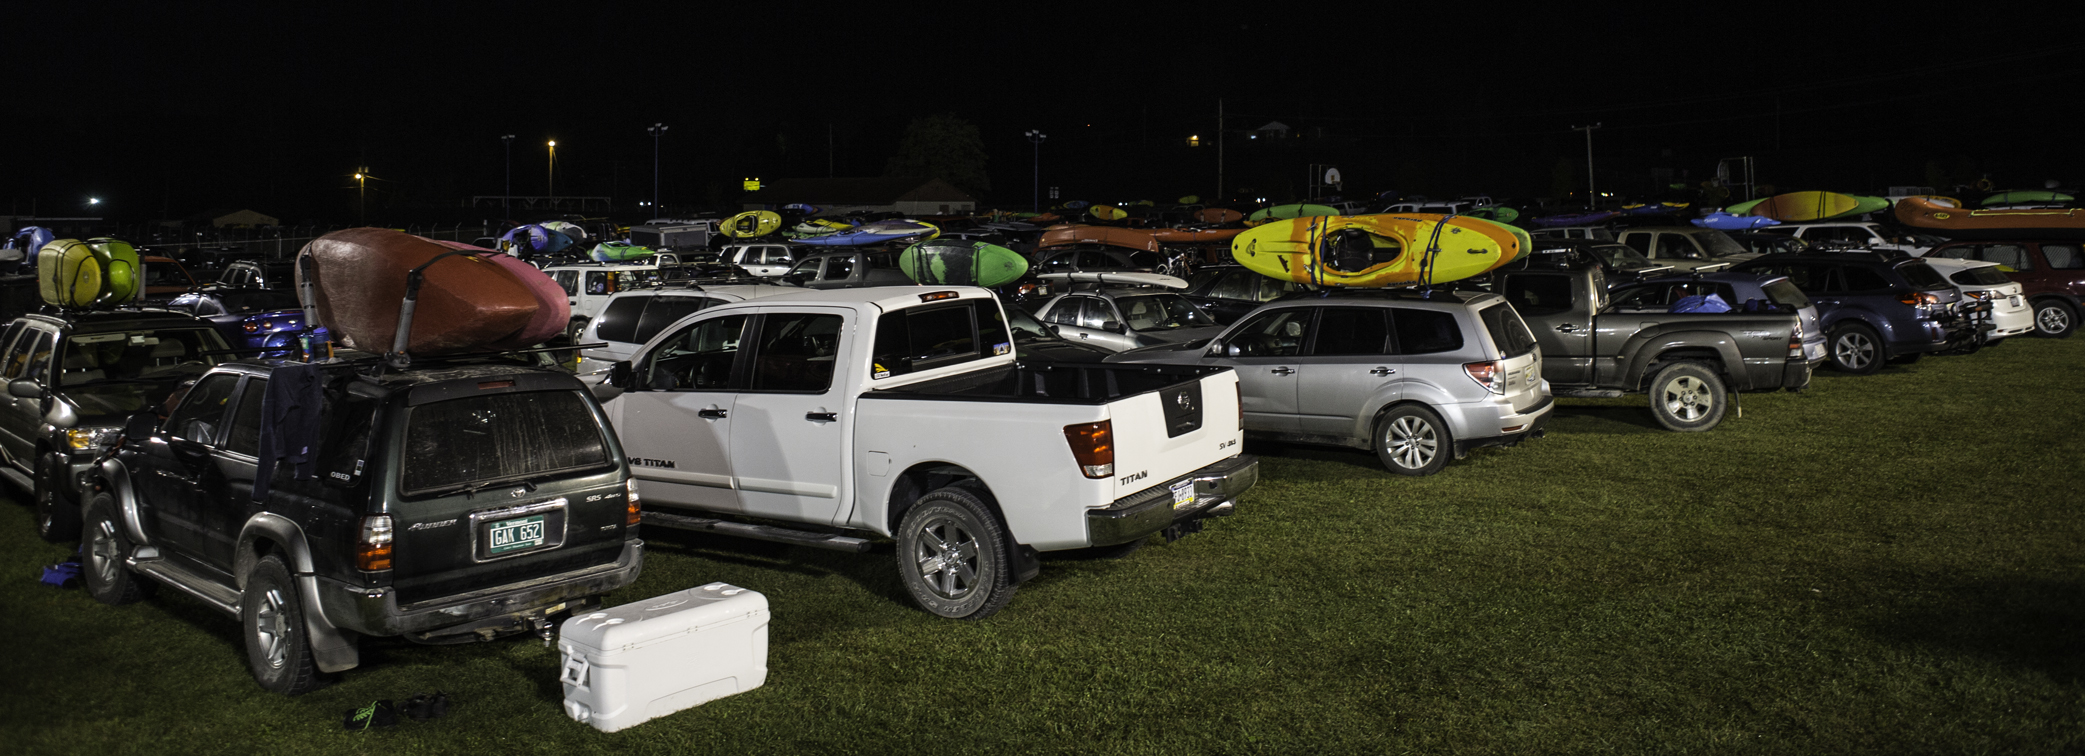 the parking lot on the eve of the fest - so many boats.....